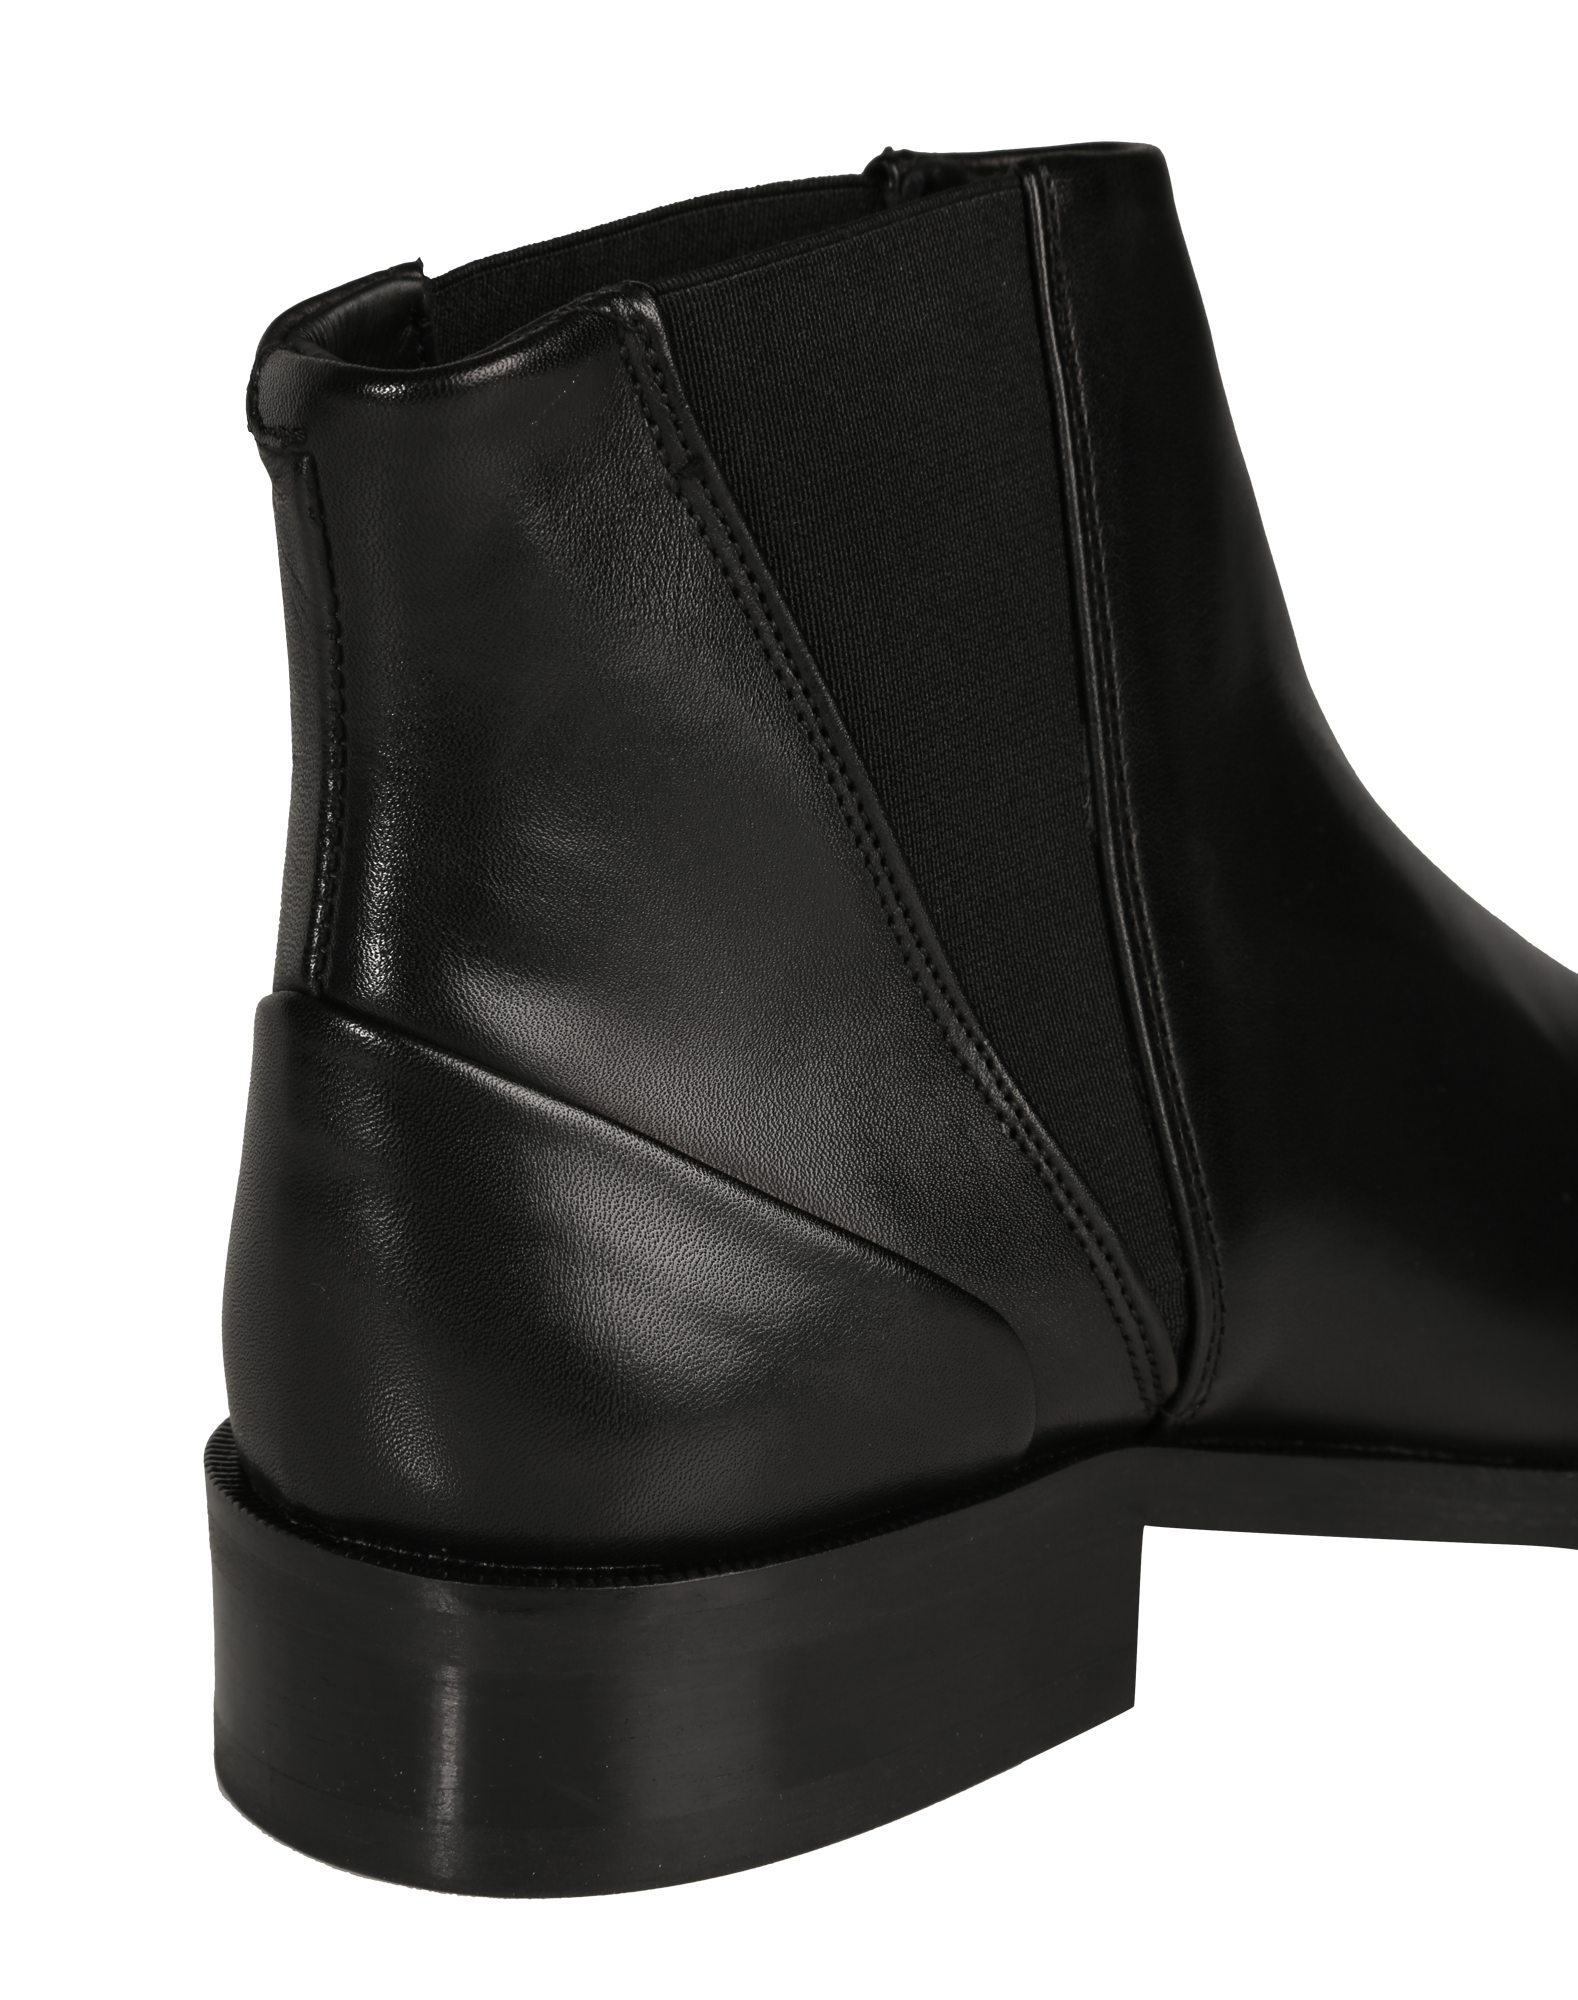 Chelsea Boots 'prime' tDP52gmw1b